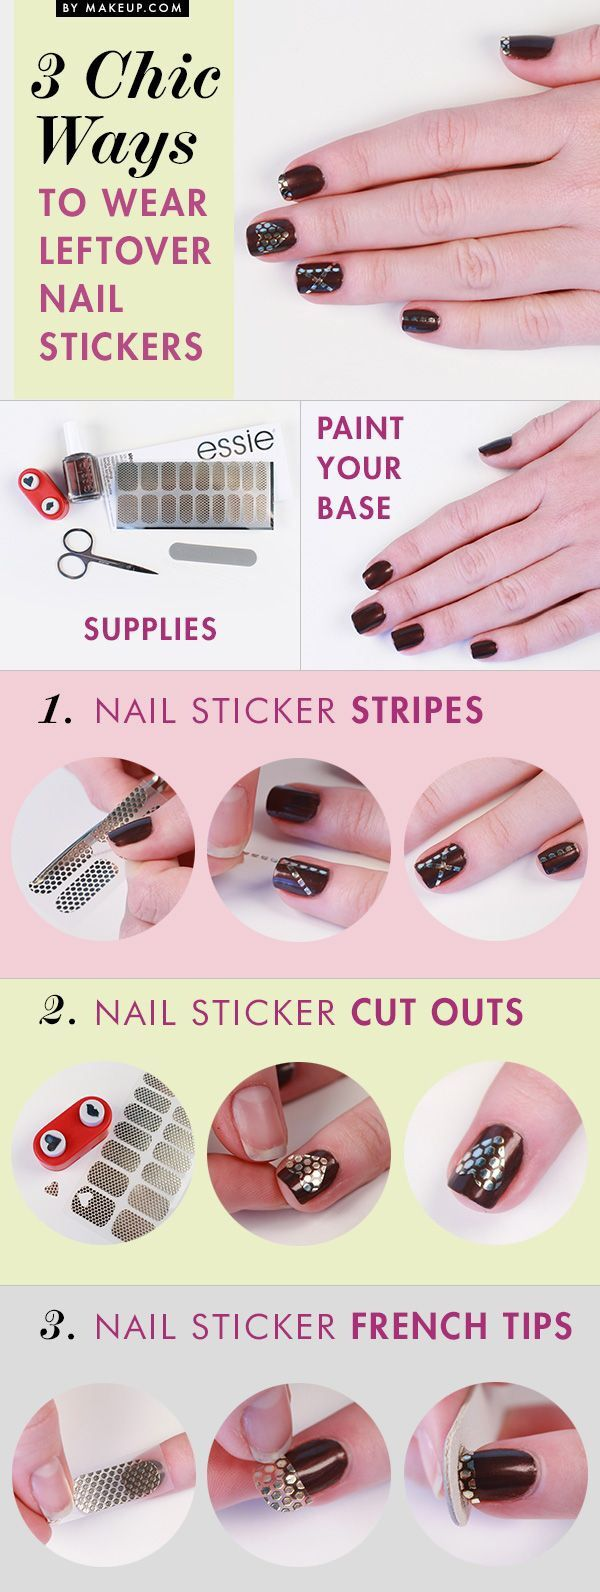 Enter to win a free sheet of nail wraps | Have you tried Nail Wraps yet? Message me with your questions and be entered to win this weeks drawing.